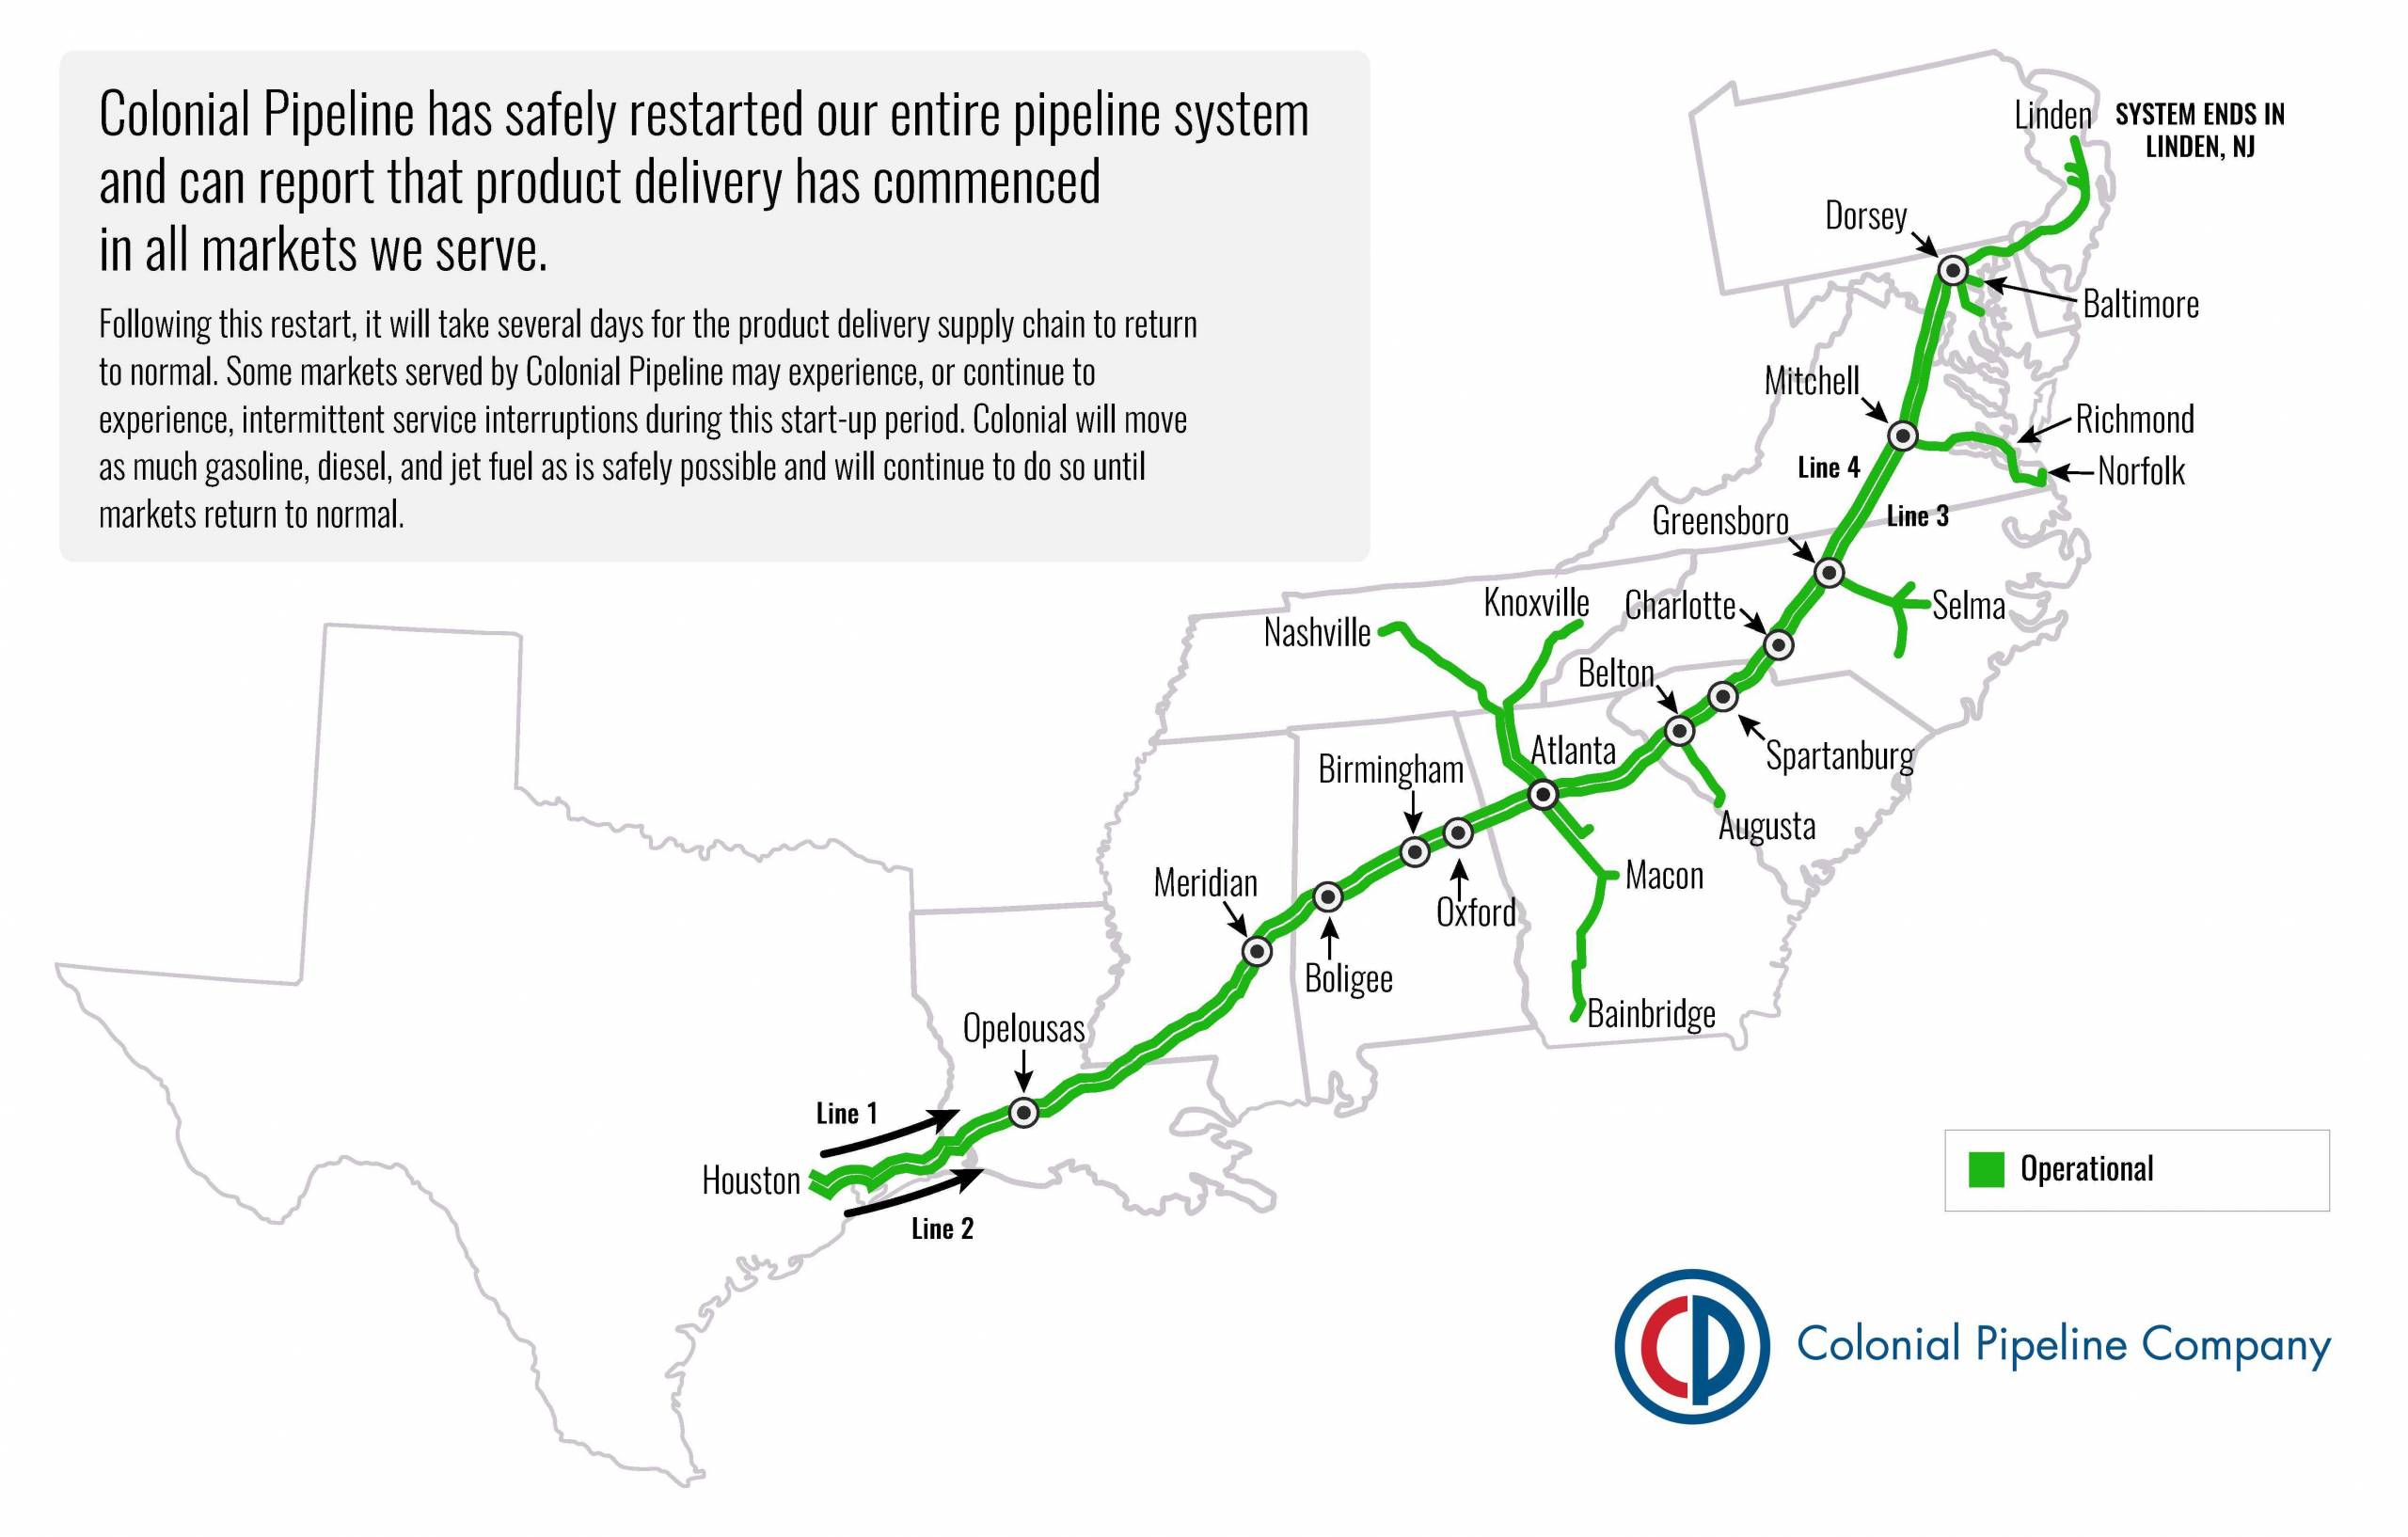 colonial pipeline evening update 05132021